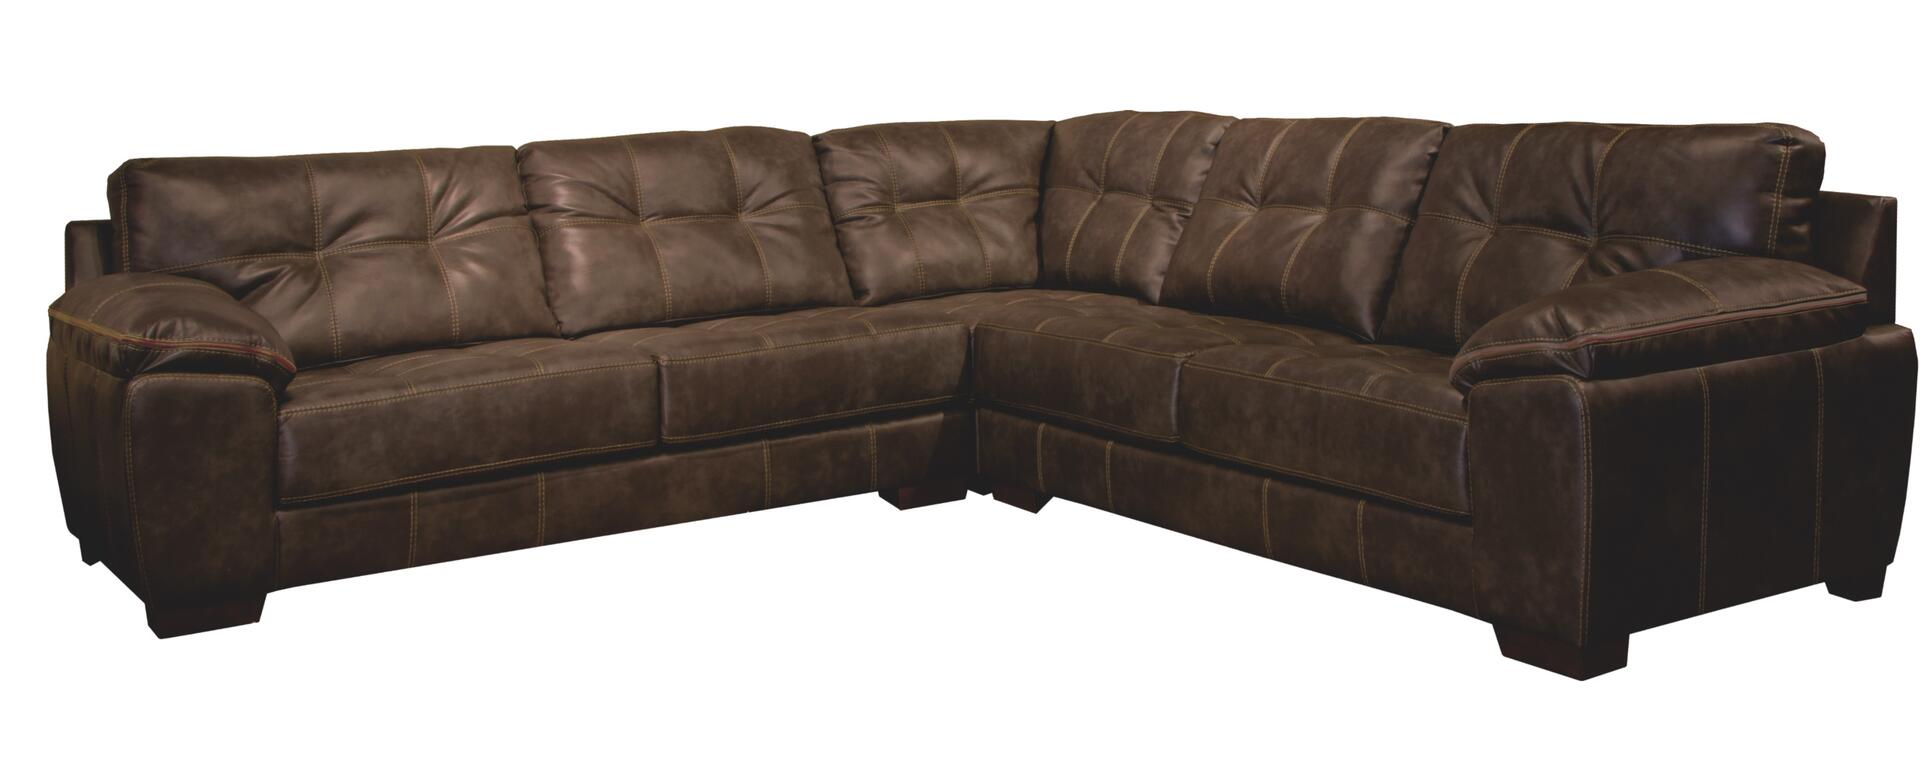 Hudson Sofa Collection Reviews Jackson Furniture 4396635973115209125209